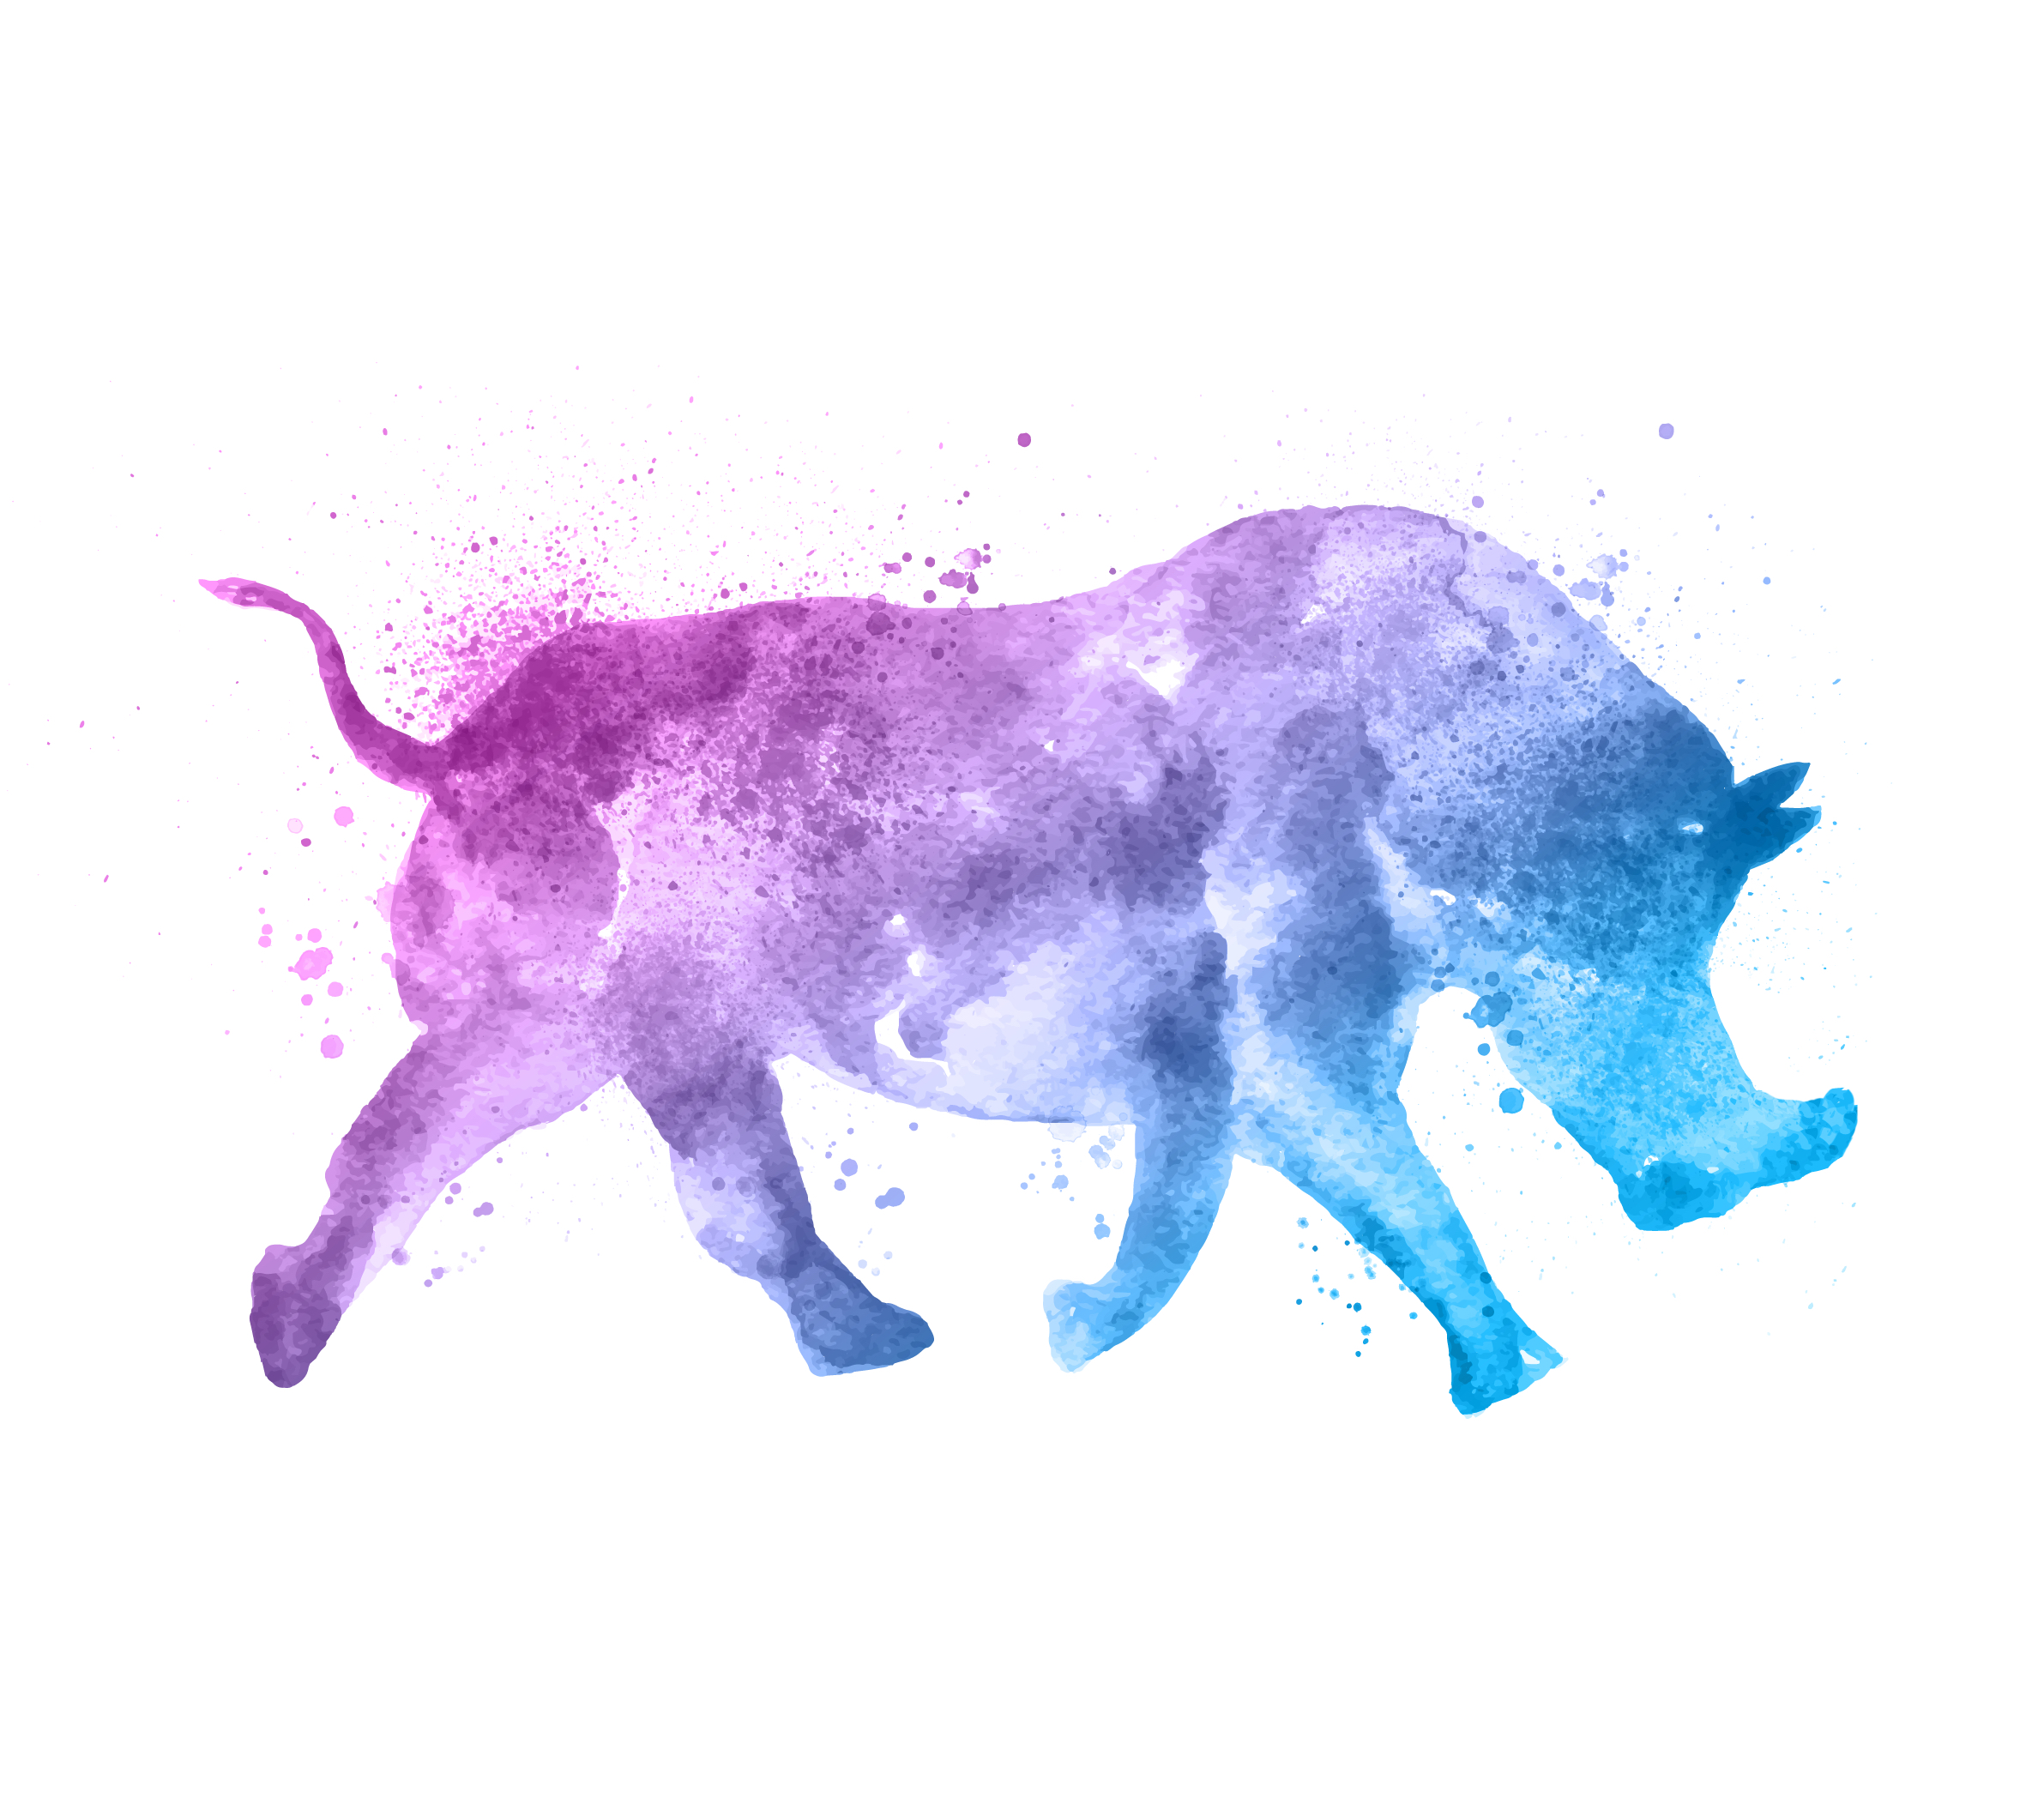 watercolor rhinoceros for Fort Worth Zoo's A Wilder Vision campaign